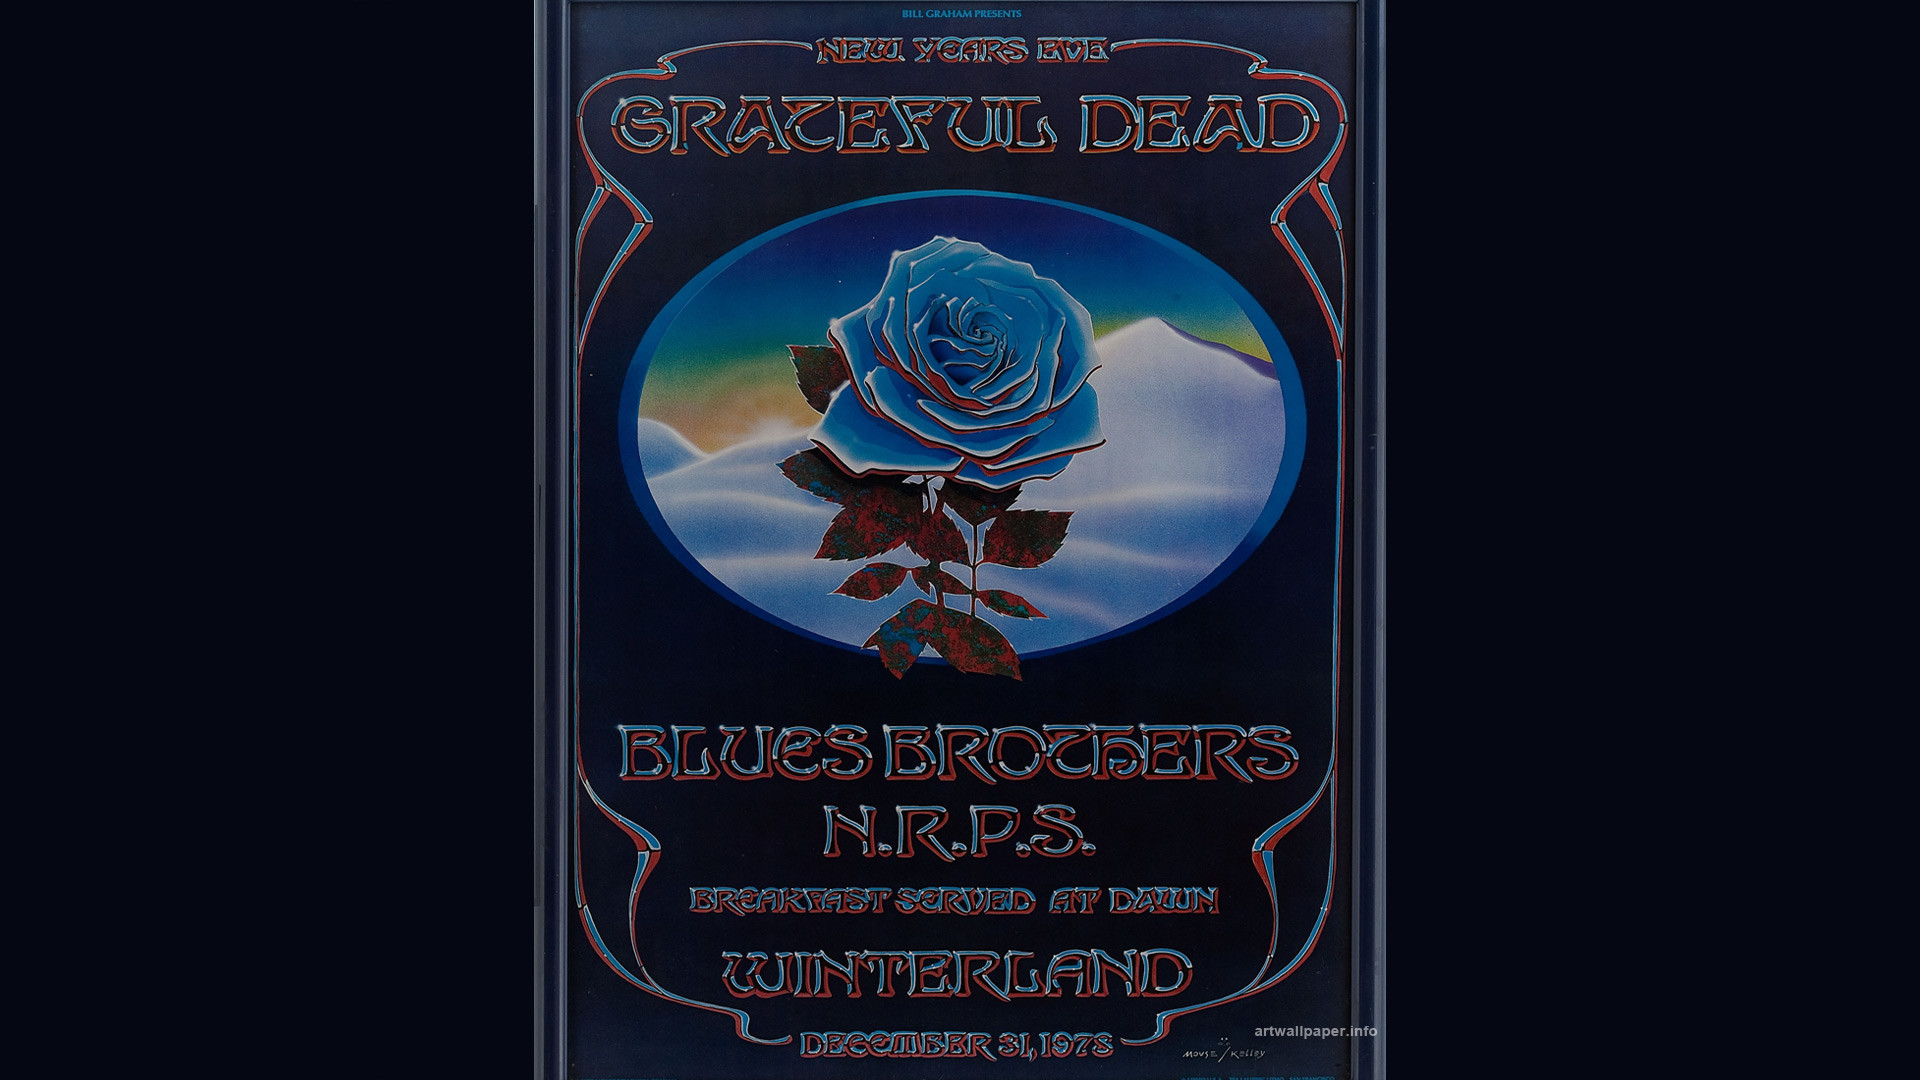 1920x1080 Grateful Dead Wallpapers, Art Wallpapers